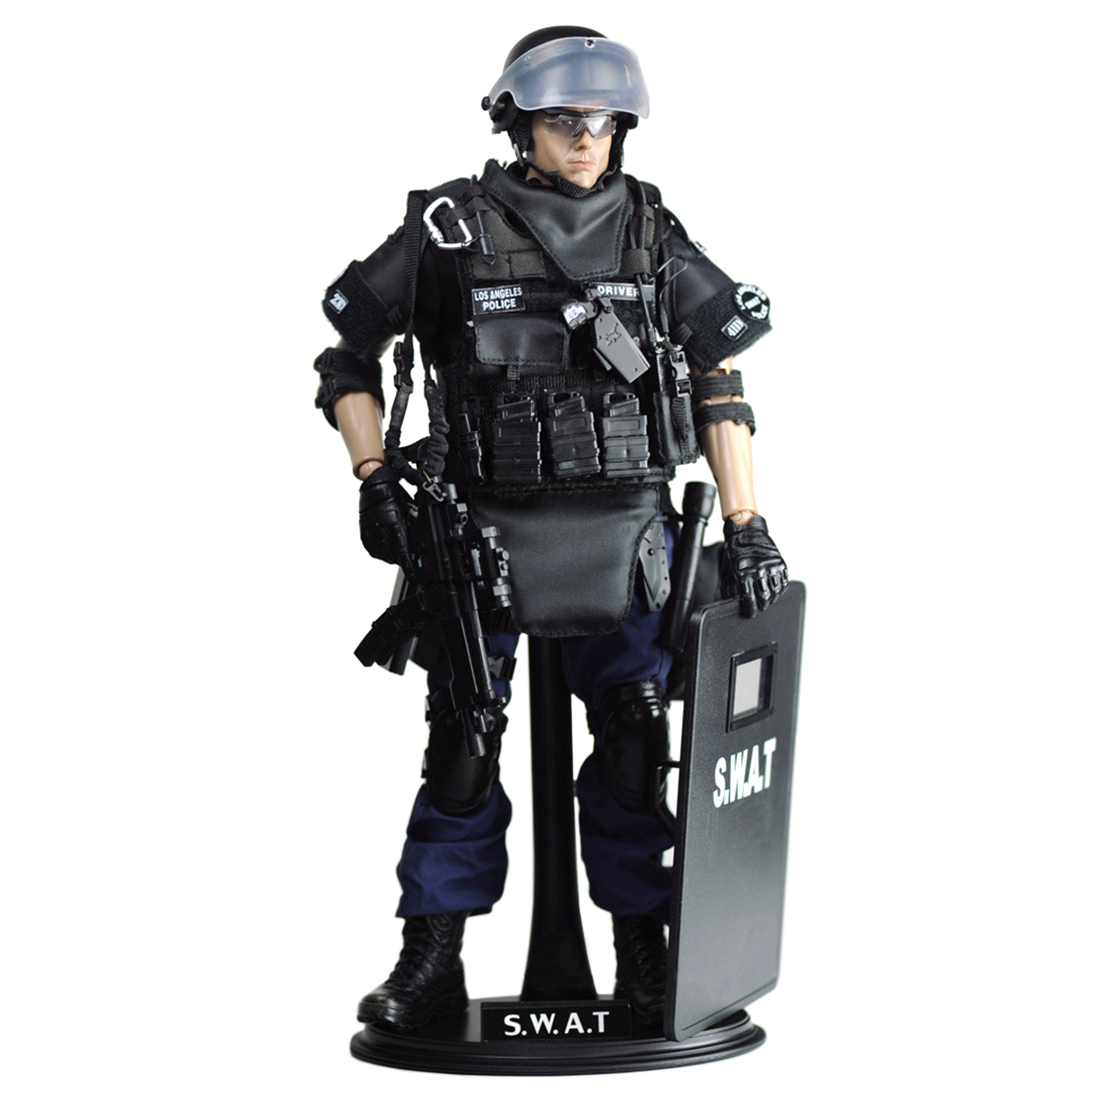 1/6 Scale Movable Solider Military Action Figure Toy with Movable Joint Collectable SWAT Team Model Birthday Gift Present